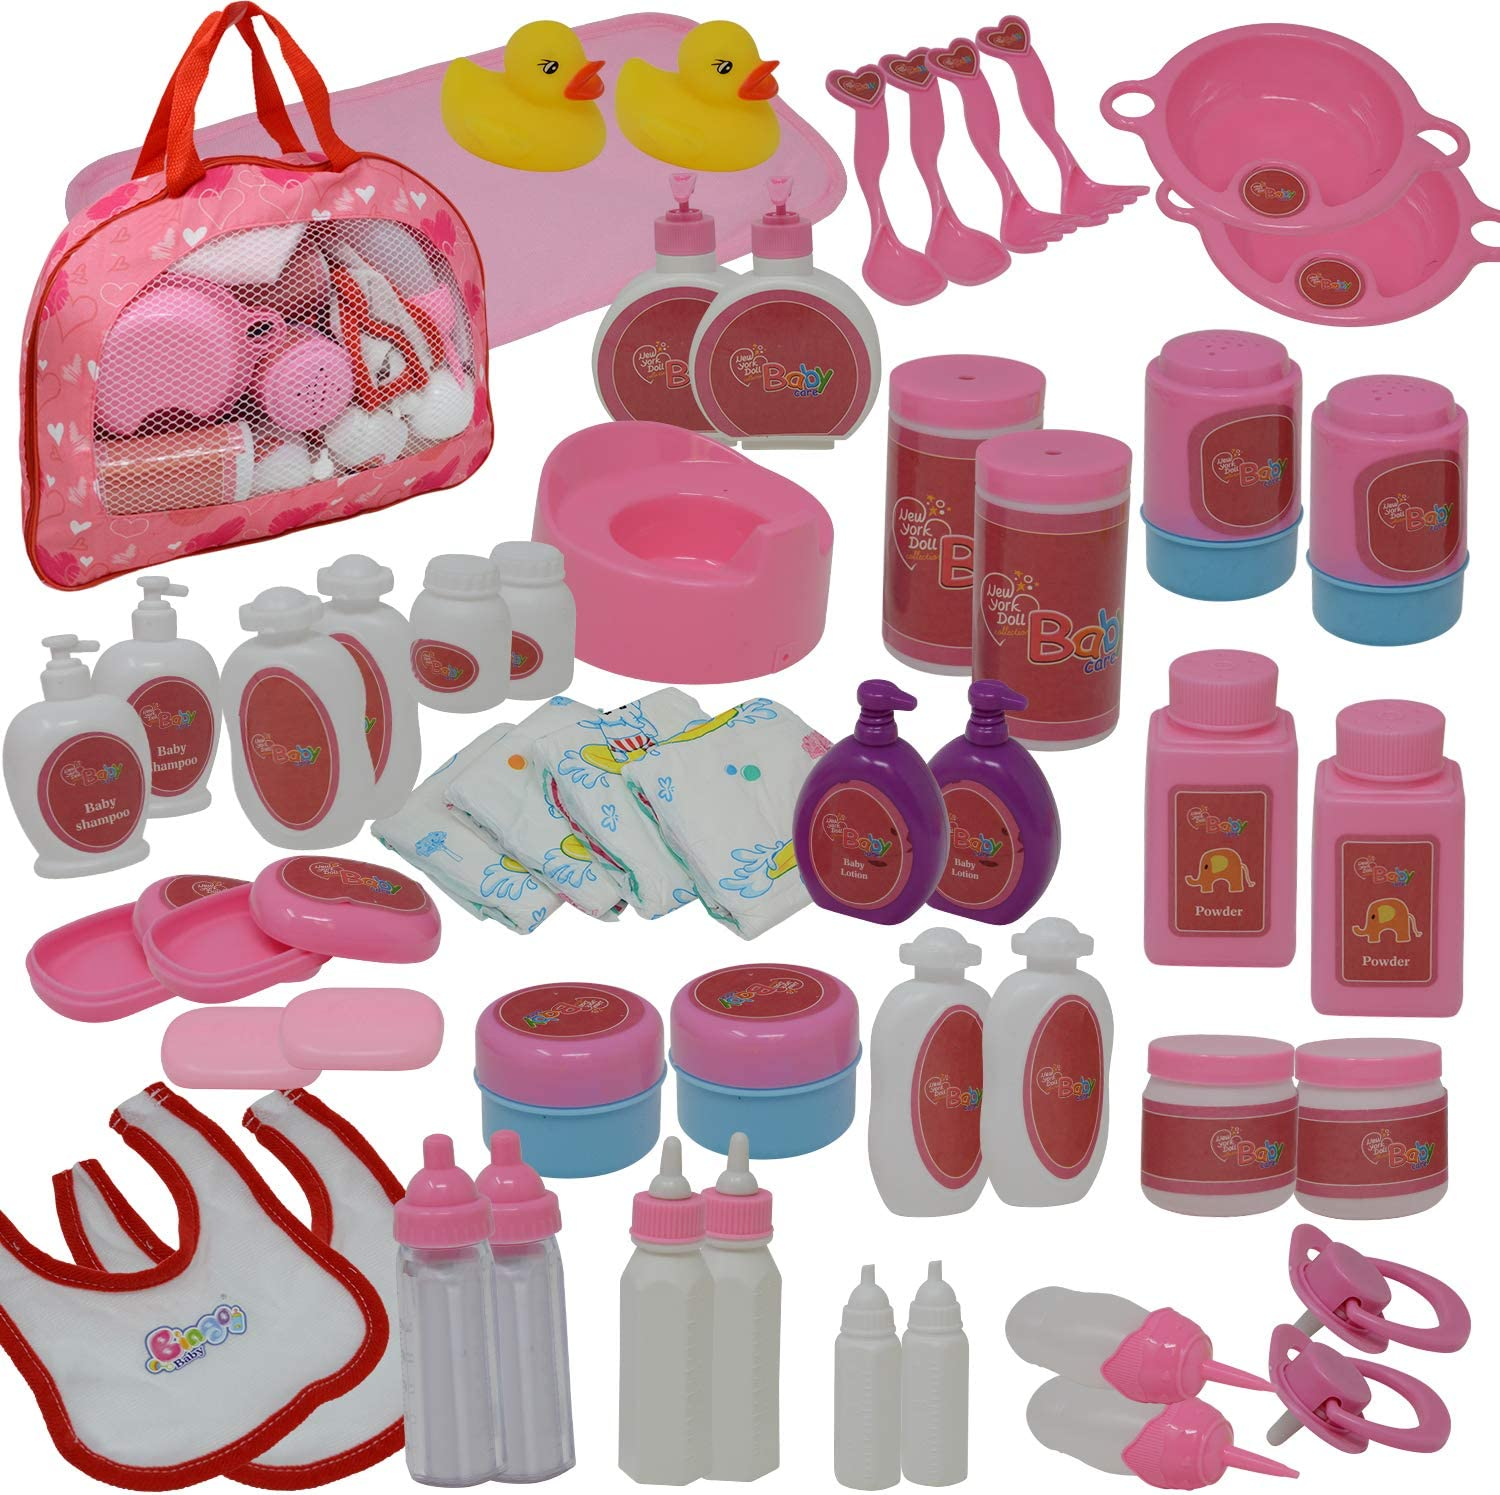 50Piece Baby Doll Feeding & Caring Accessory Set in Zippered Carrying Case - Accessories for Dolls